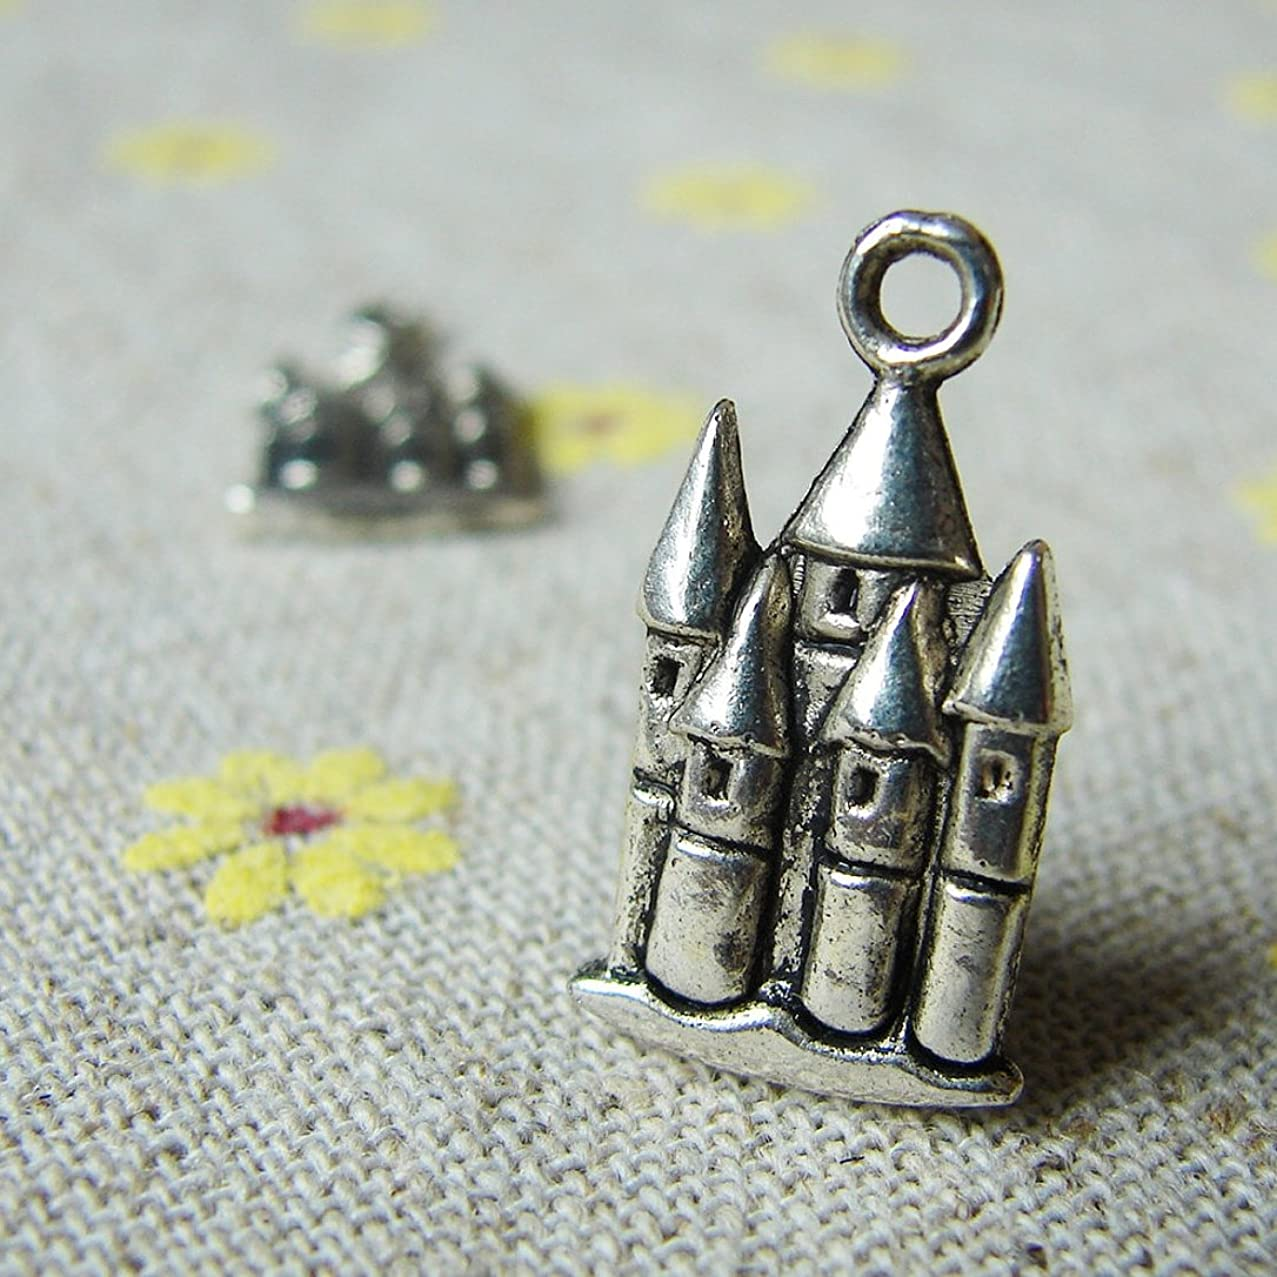 Antique Silver Castle Charms 20x13mm - 15 Pcs (NS674)